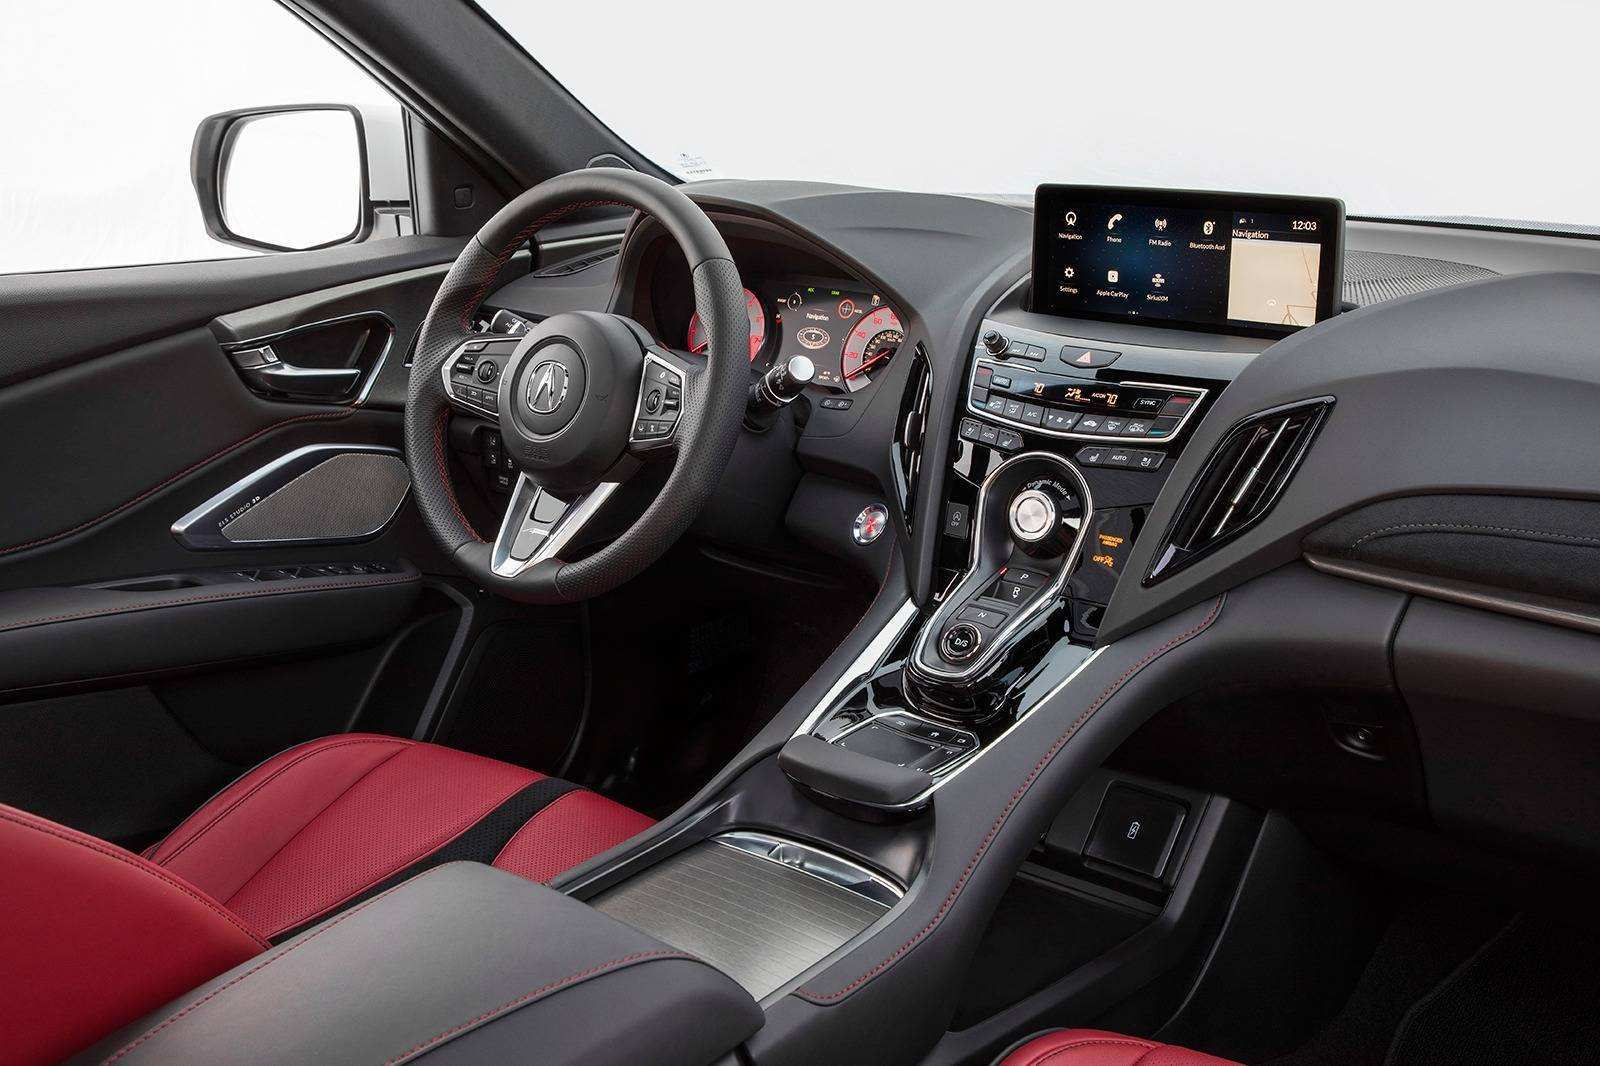 77 Great New Acura Rdx 2019 Option Packages Review And Specs Spy Shoot by New Acura Rdx 2019 Option Packages Review And Specs